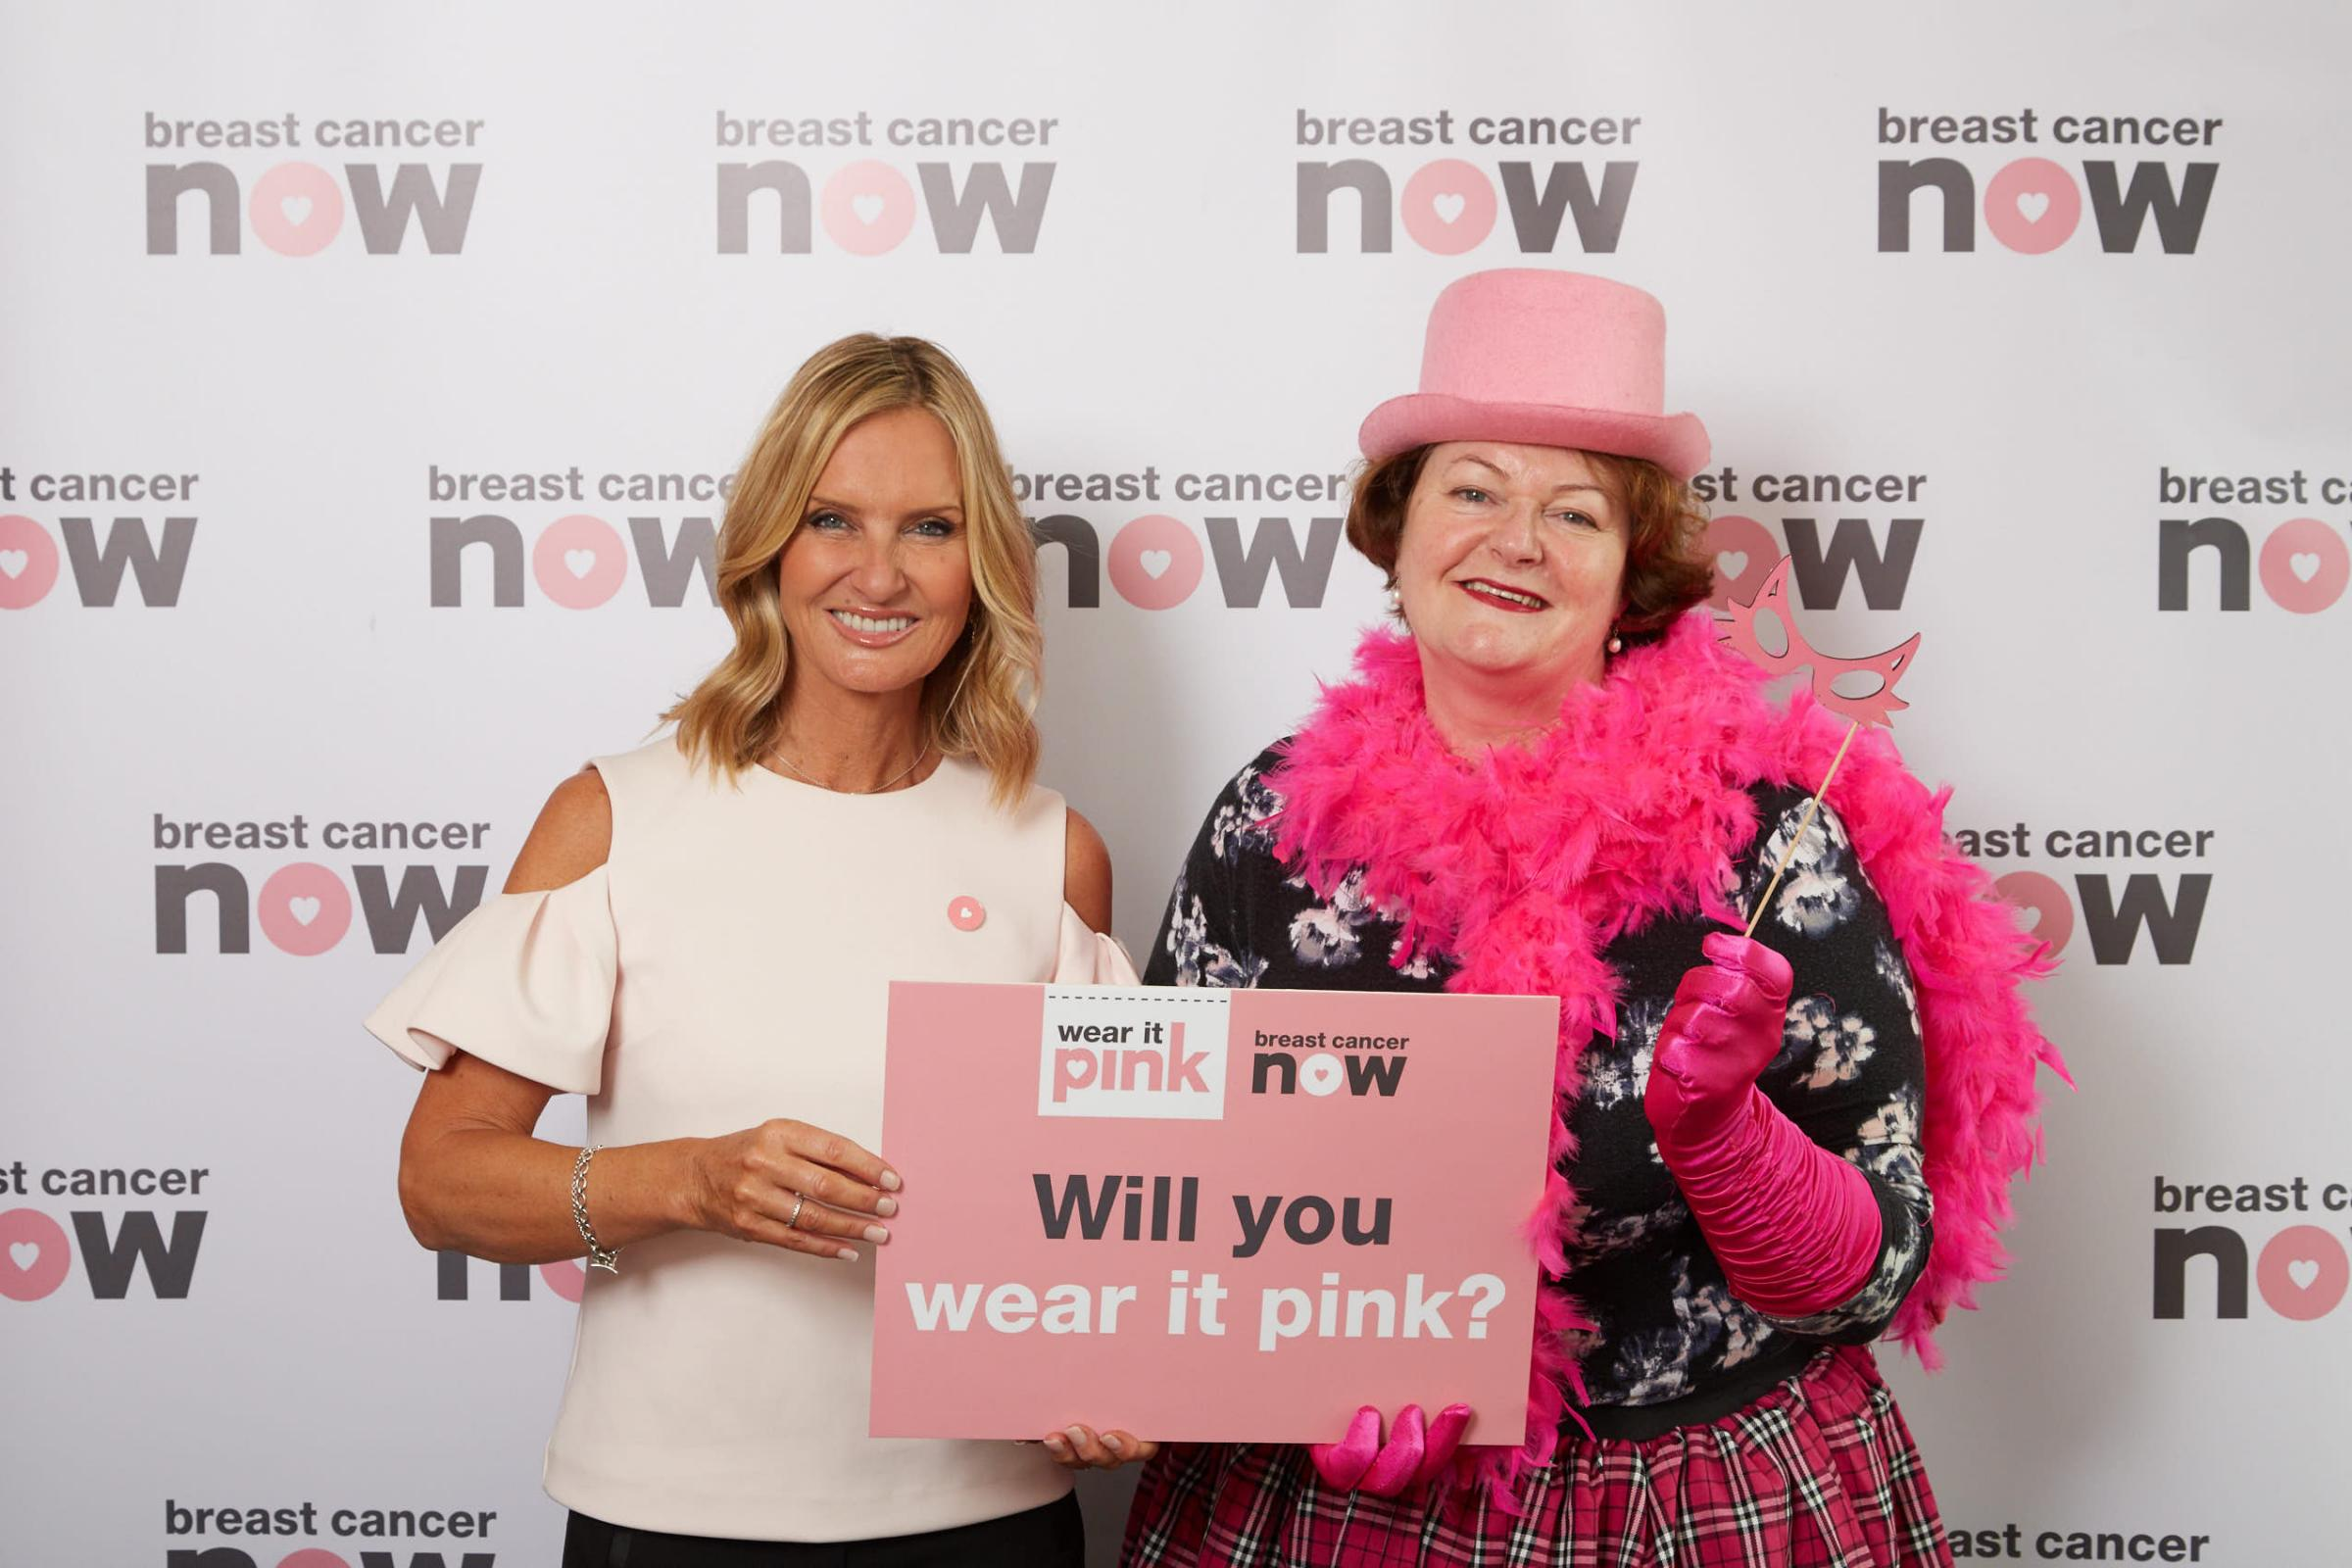 MP says 'wear it pink' for breast cancer charity